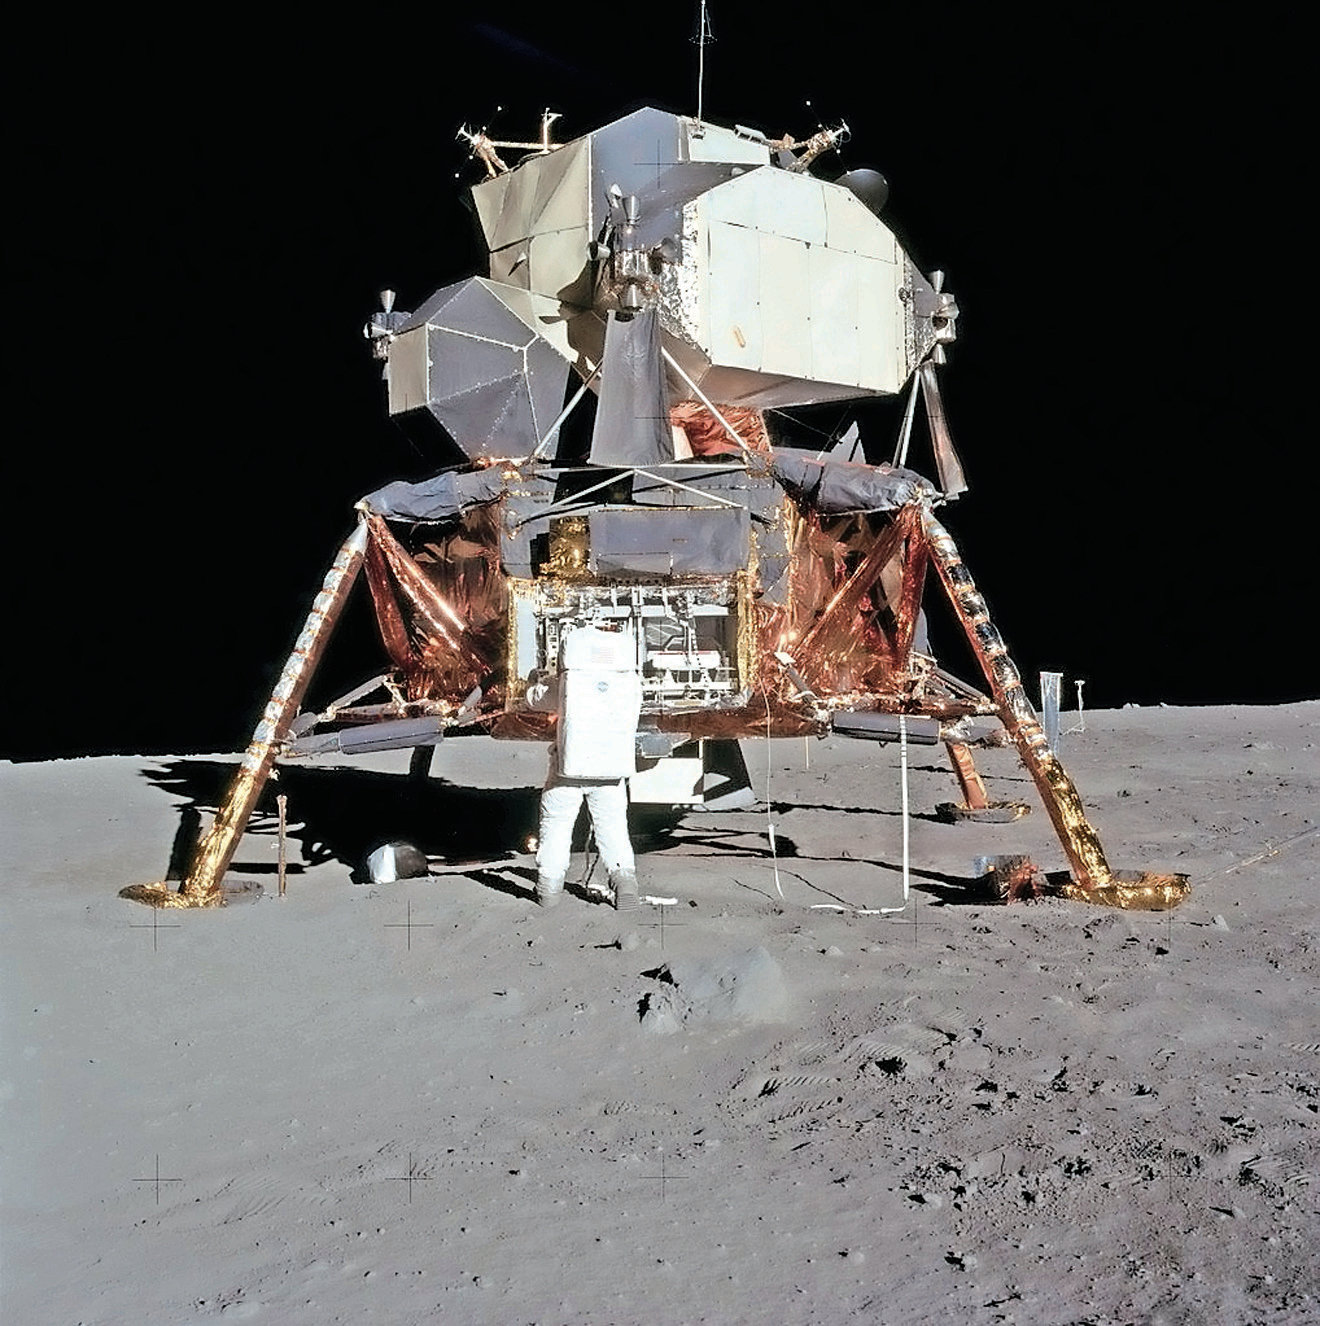 More than 600 million people worldwide watched the live television broadcast of Neil Armstrong taking the first step onto the moon on July 20, 1969.